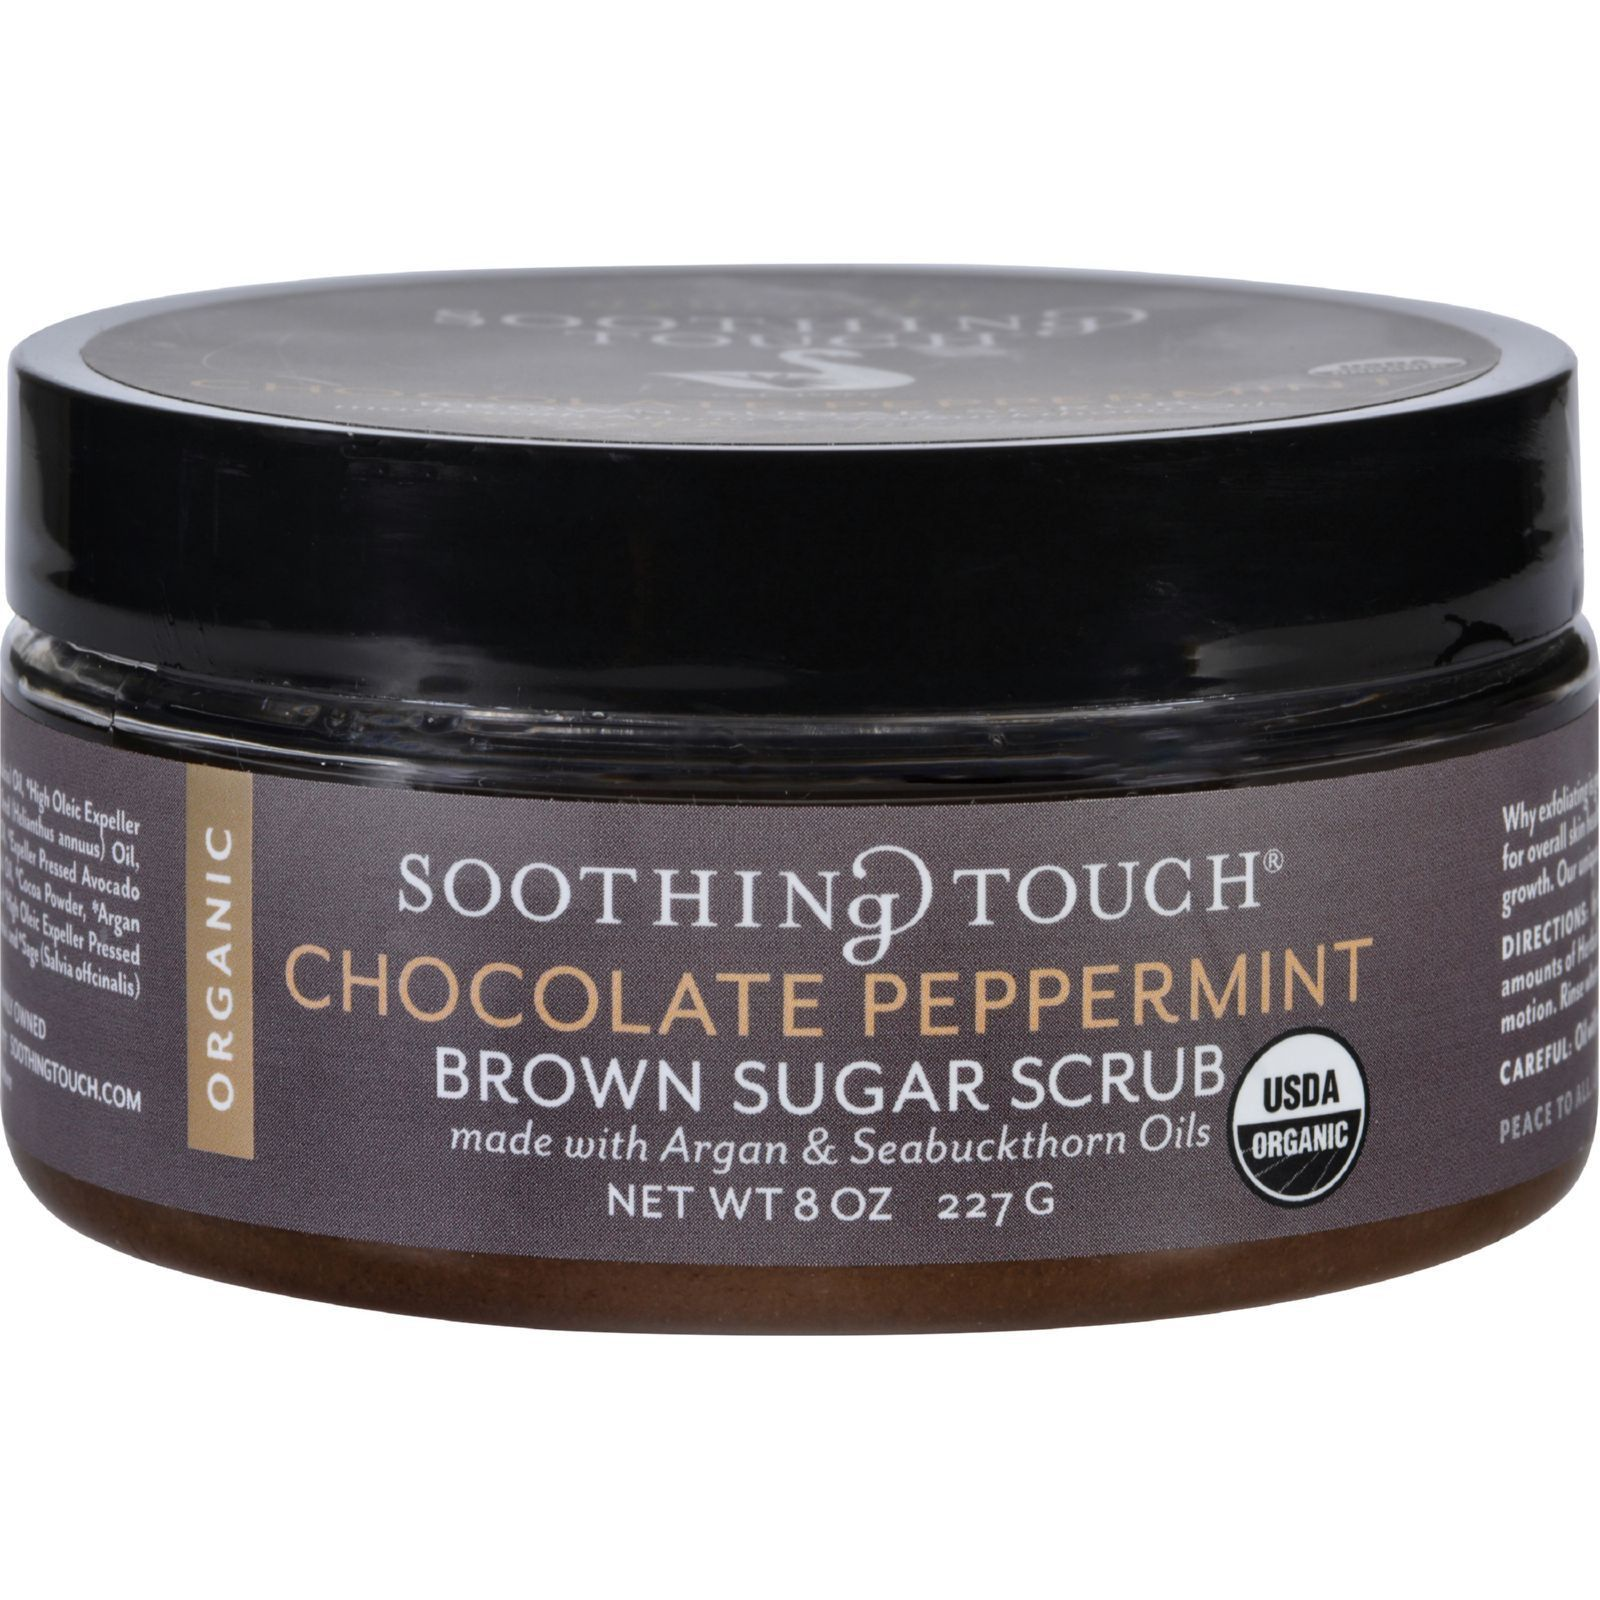 Soothing Touch Brown Sugar Scrub - Chocolate/Peppermint - 16 oz Alba Botanica Hawaiian Oil-Free Moisturizer, Refining Aloe & Green Tea 3 oz (Pack of 3)